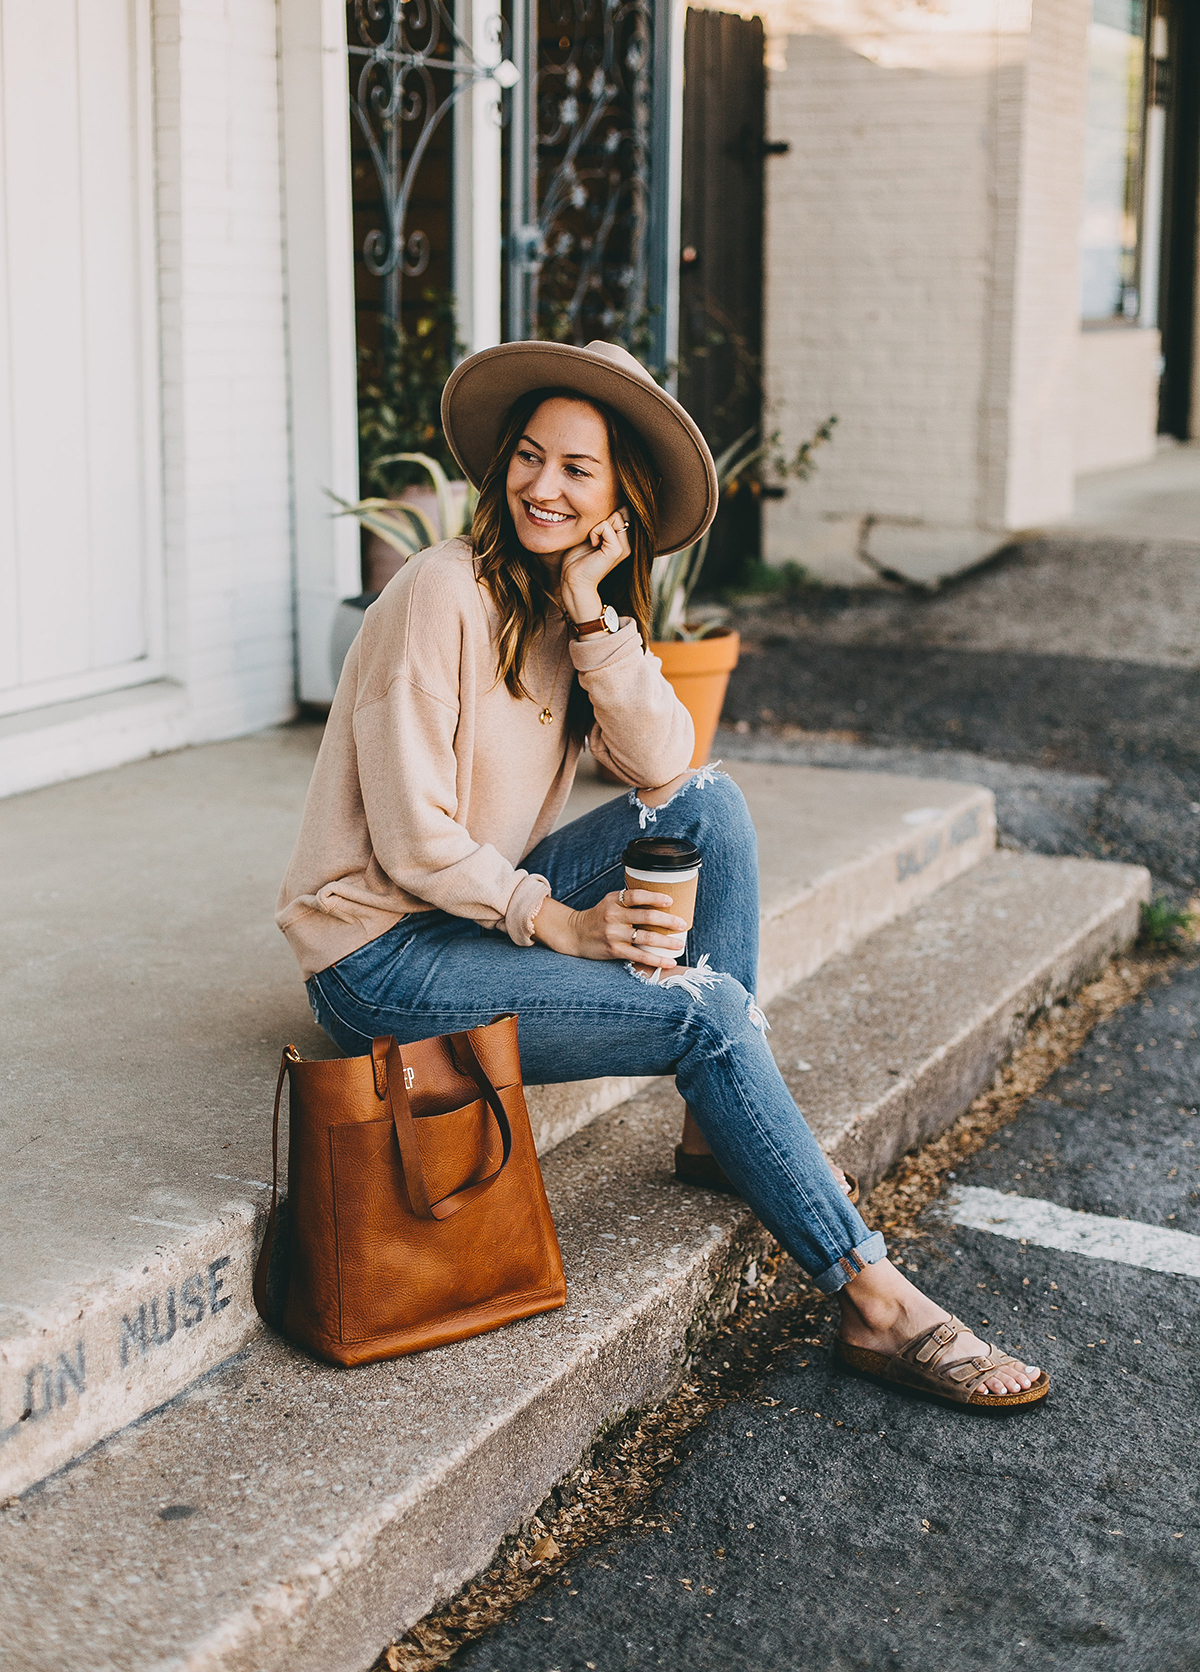 livvyland-blog-olivia-watson-austin-texas-fashion-blogger-madewell-peach-sweatshirt-medium-transport-tote-levis-501-jeans-10